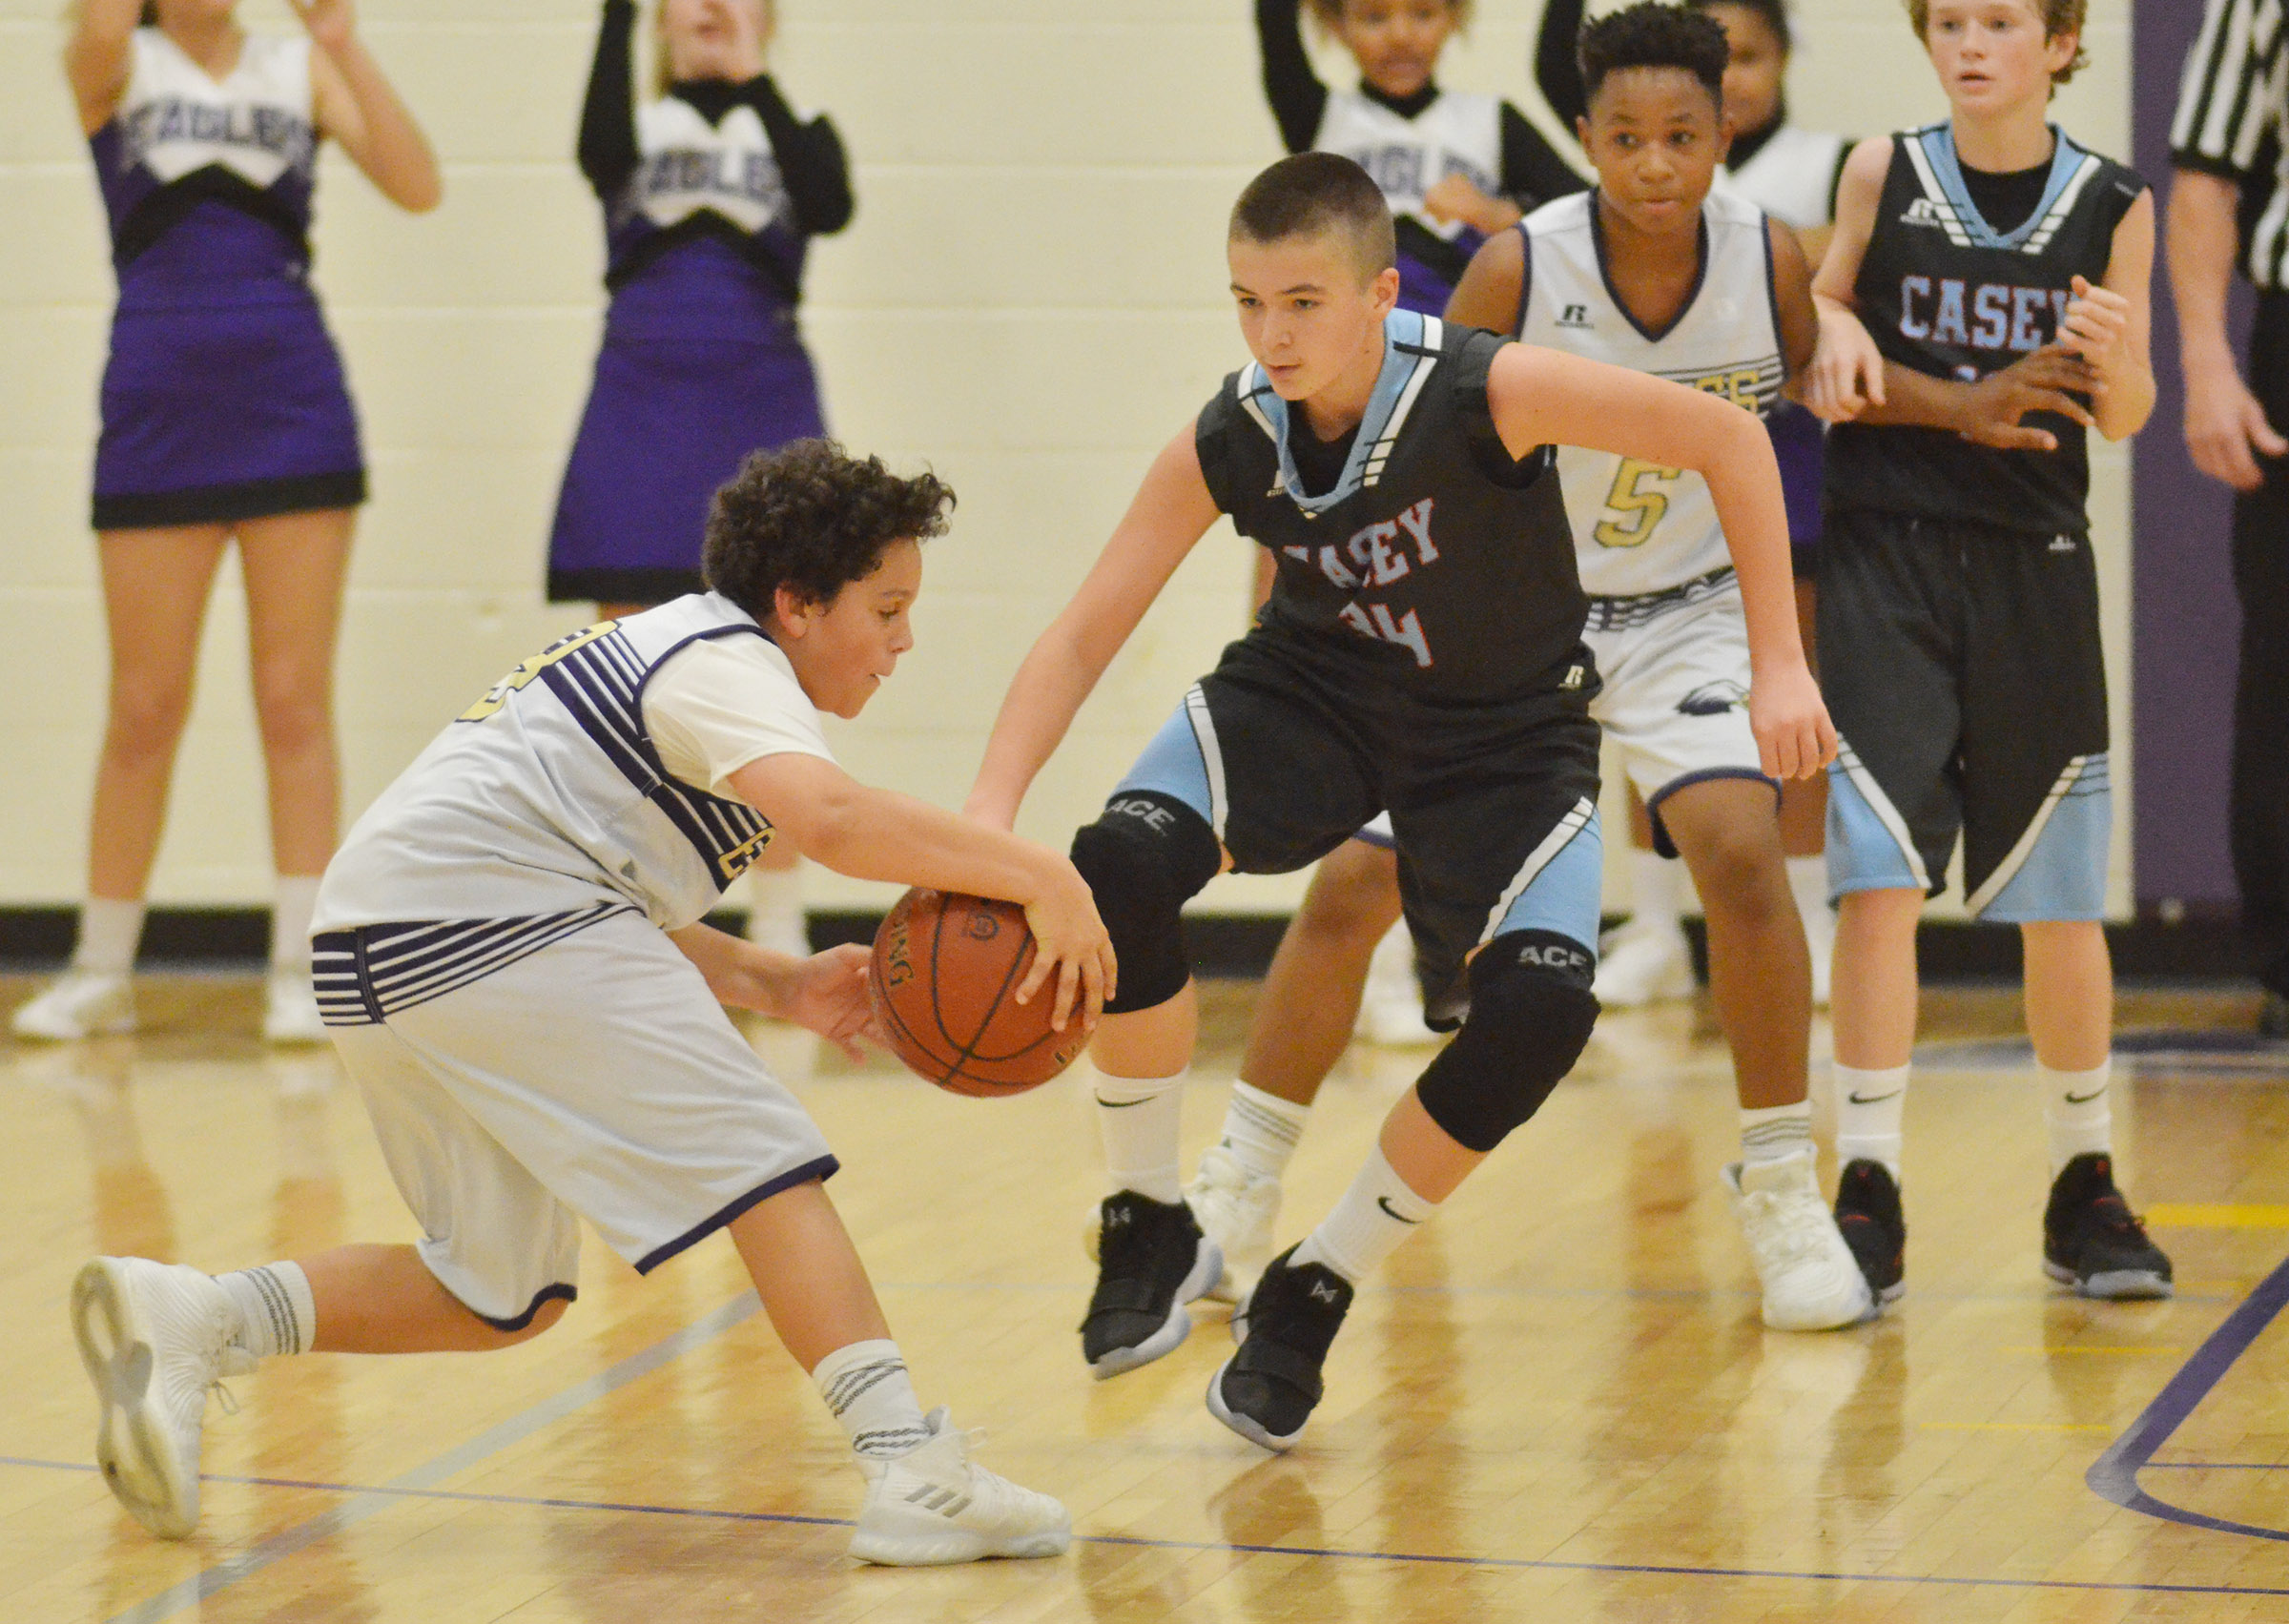 CMS seventh-grader Kaydon Taylor dribbles as classmate Deondre Weathers plays defense.